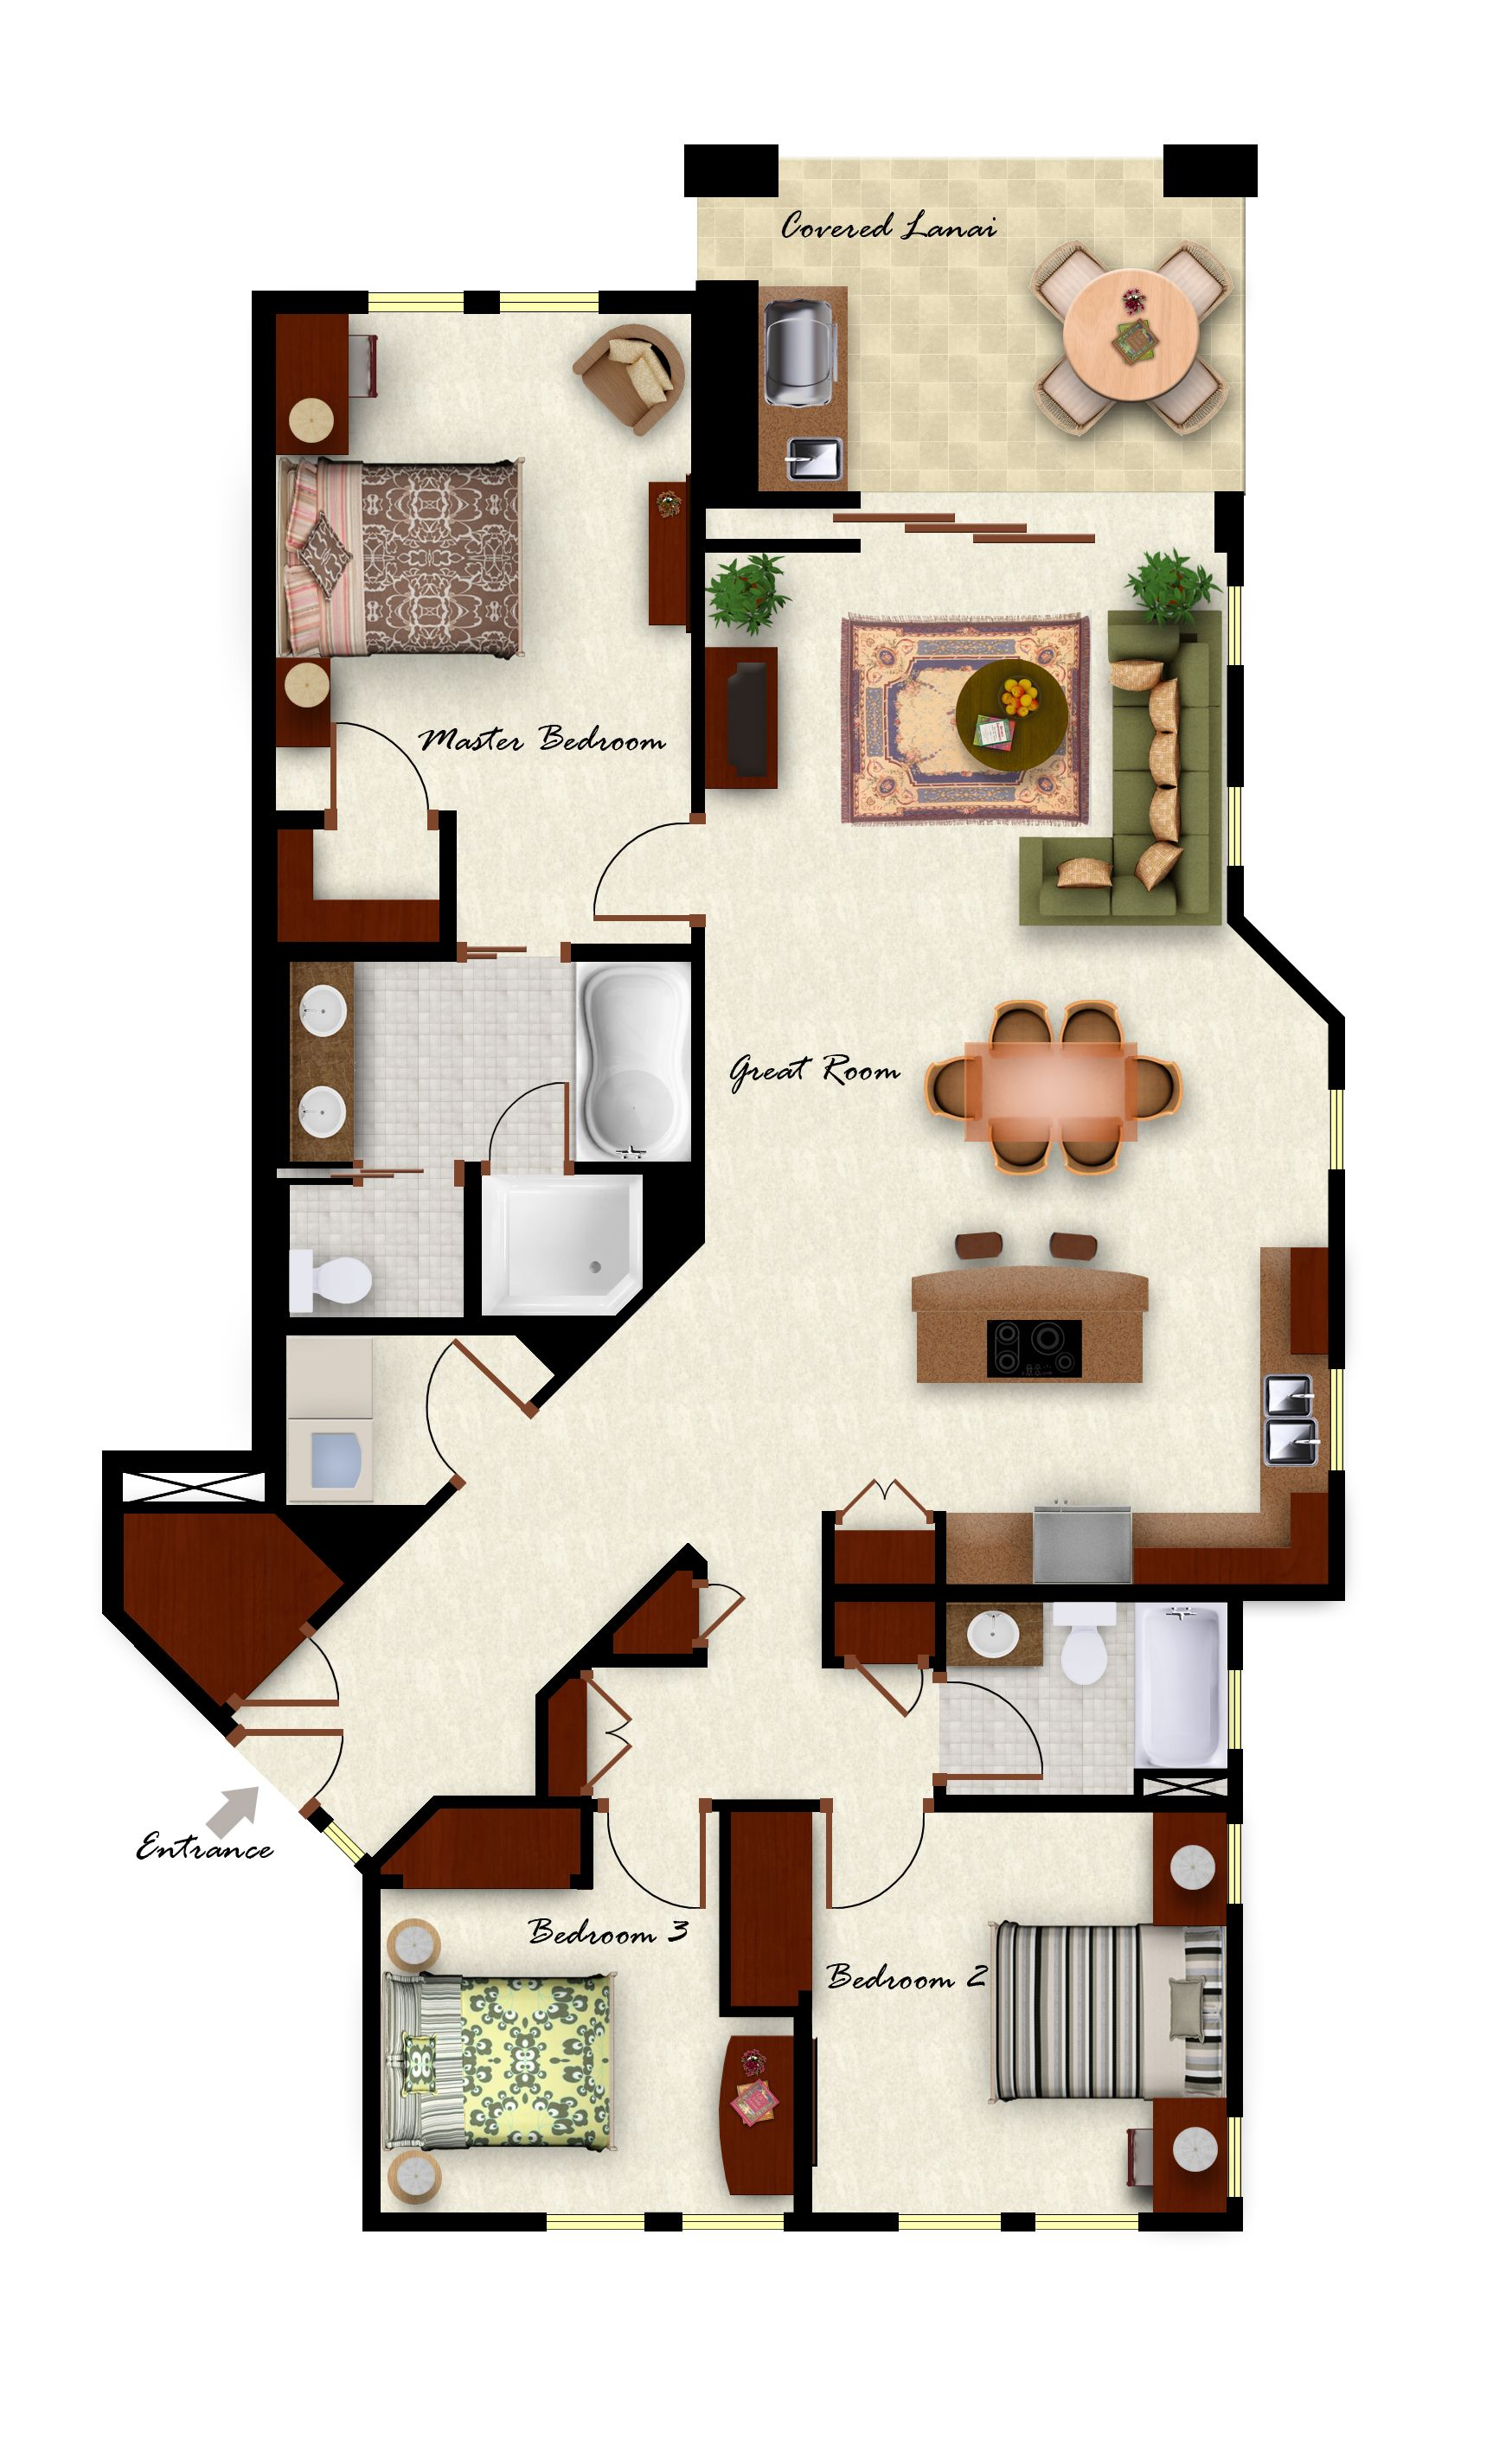 78+ images about planos on pinterest | bedroom floor plans